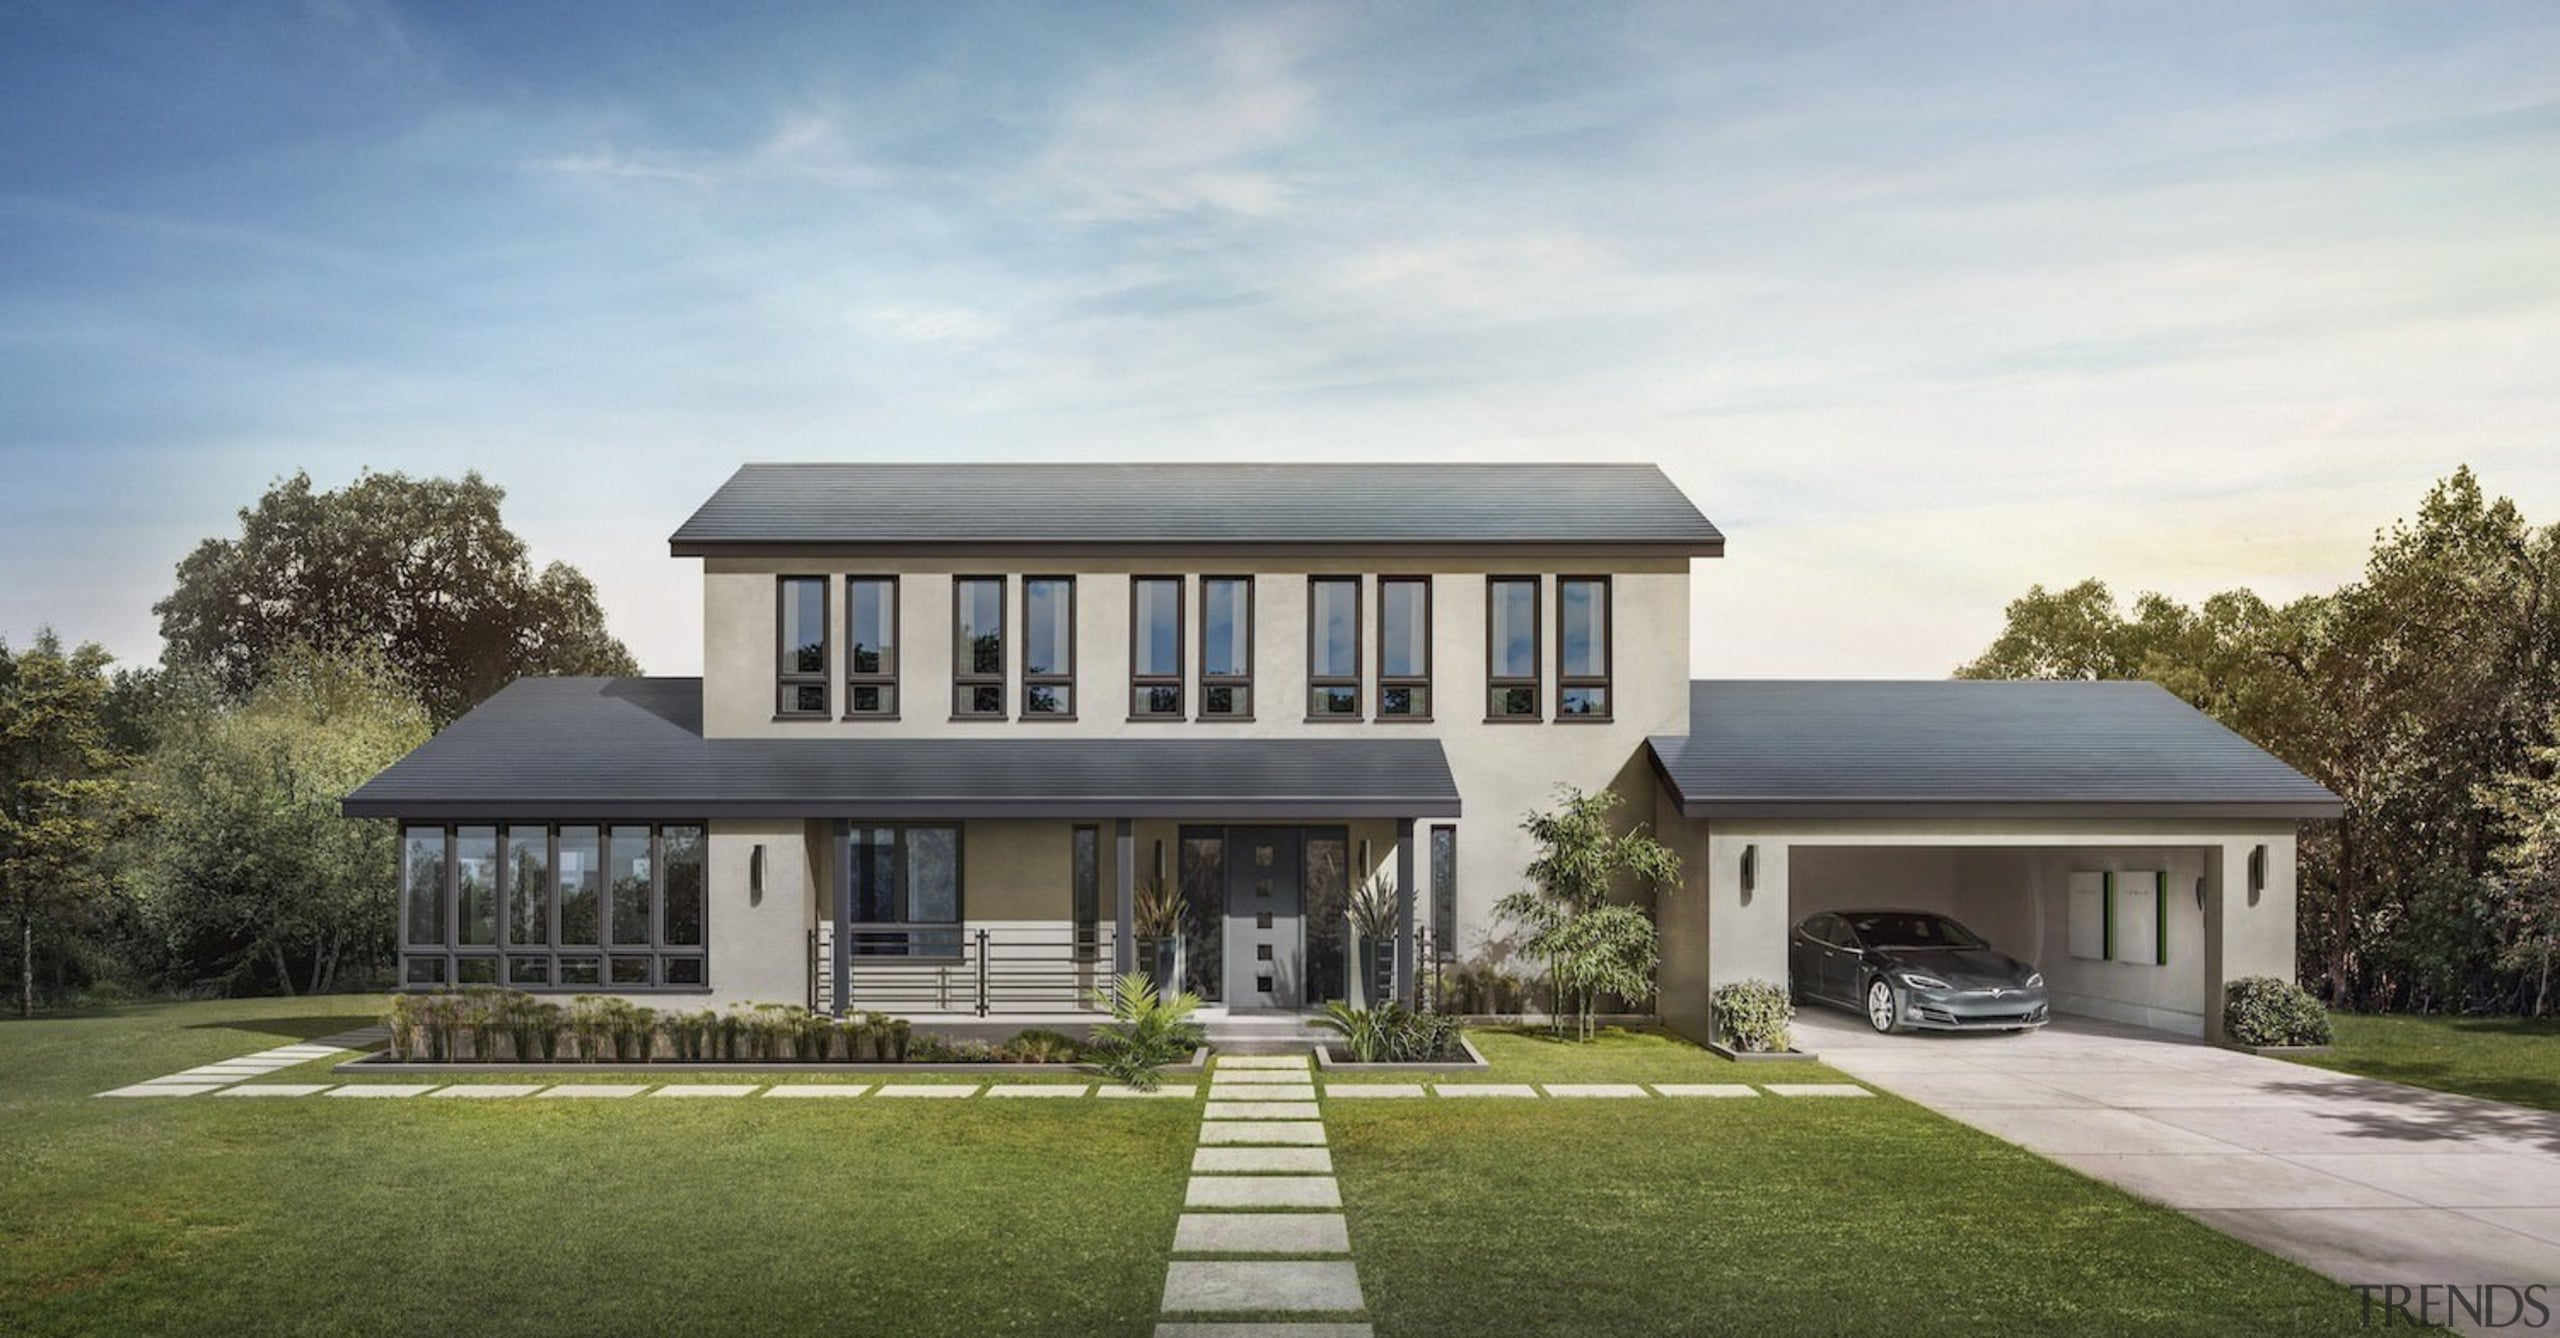 A home with Tesla Solar Roof tiles installed architecture, cottage, elevation, estate, facade, farmhouse, home, house, mansion, property, real estate, residential area, roof, villa, gray